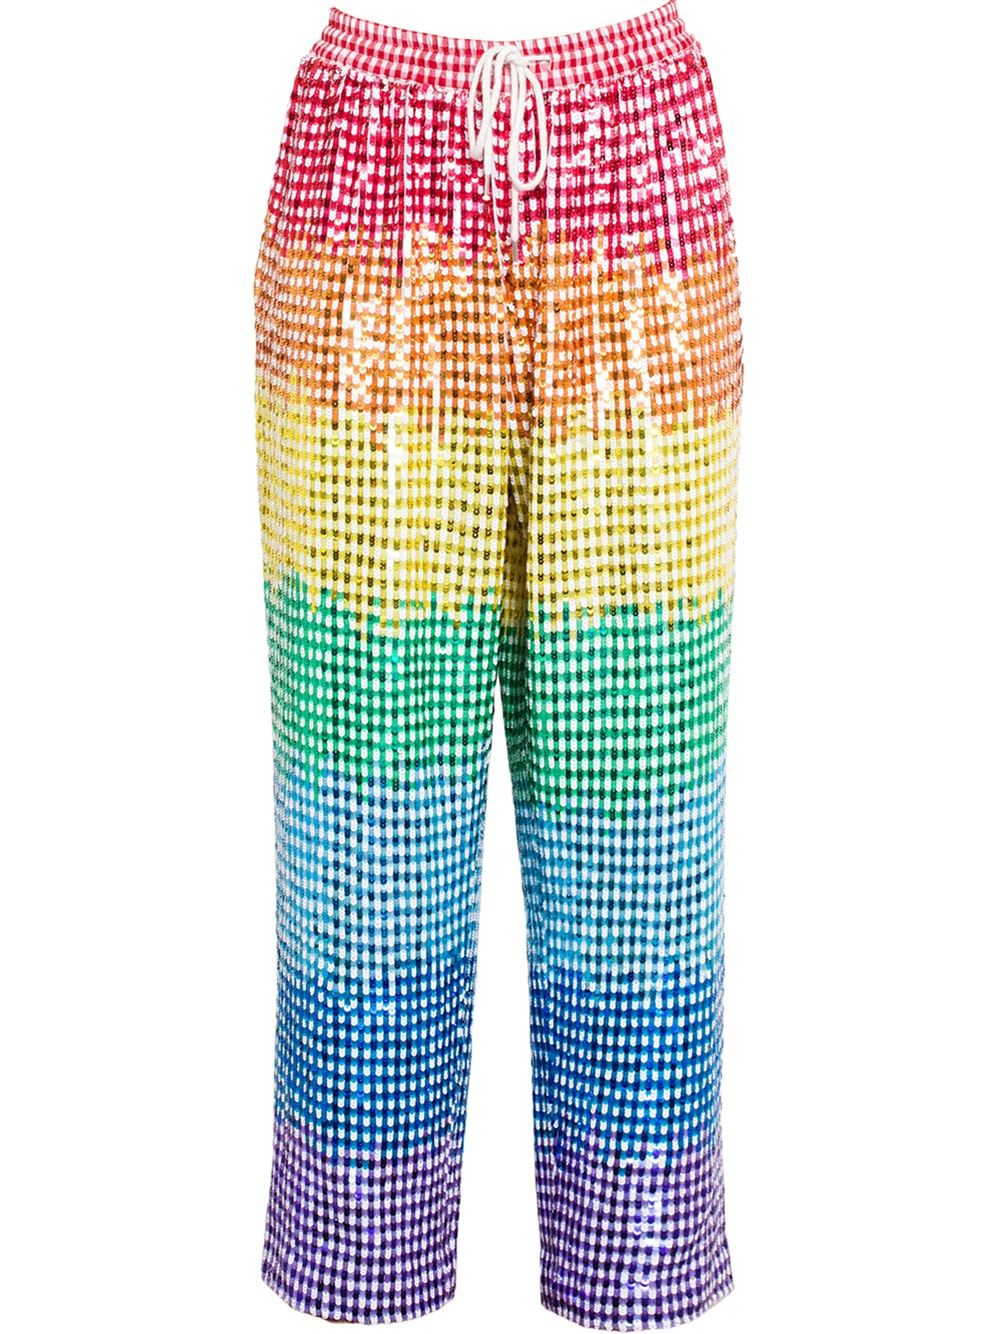 Ashish Sequined   Trousers  ($821)